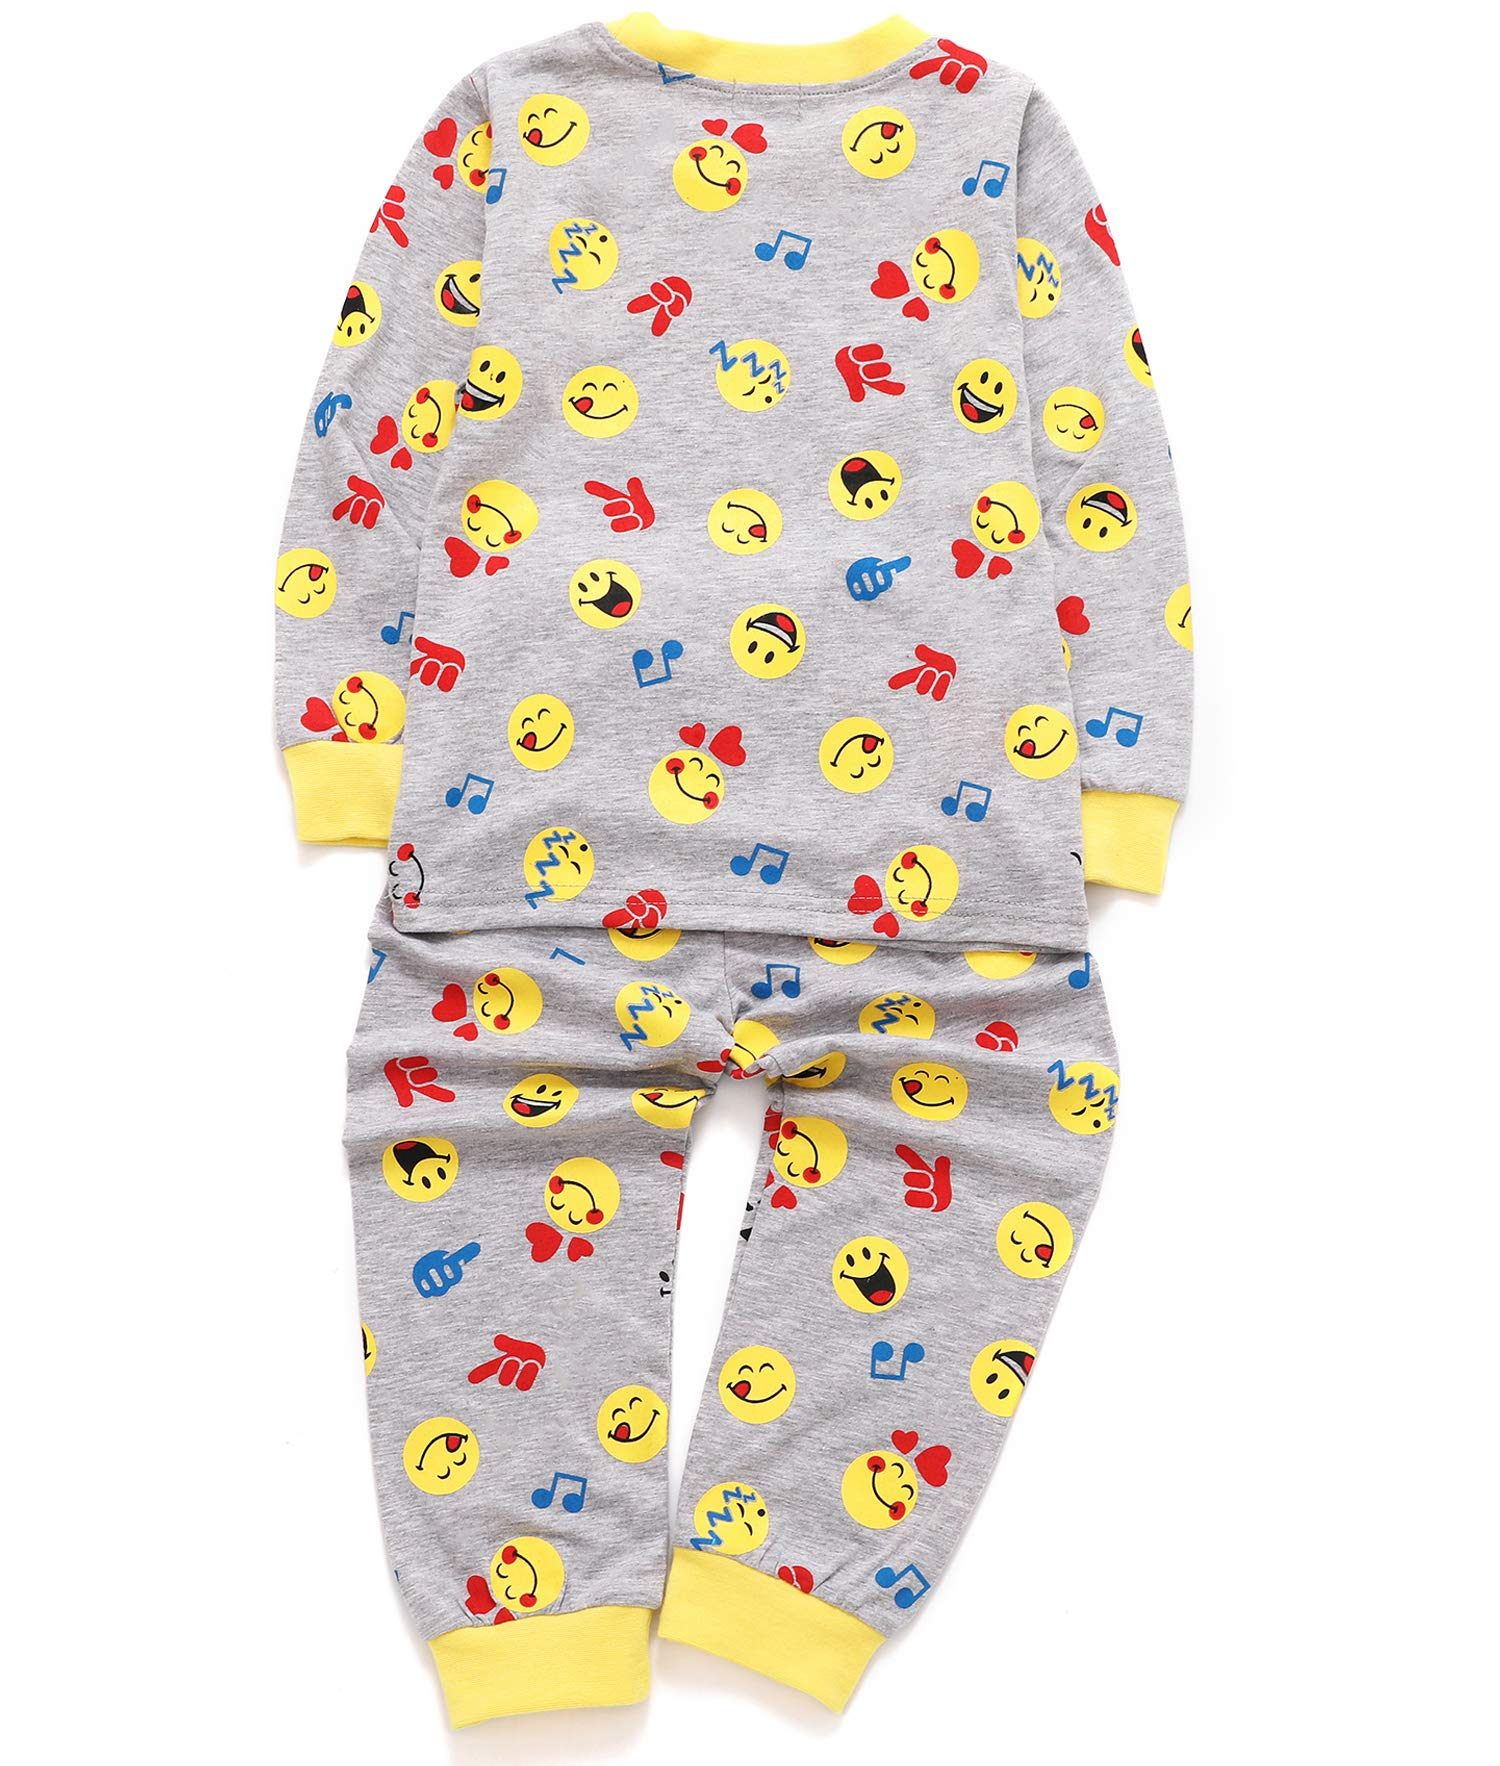 DHASIUE Christmas Kids & Toddler Pajamas Girls 2 Piece Pjs Set Cotton Sleepwear 2-7 Years